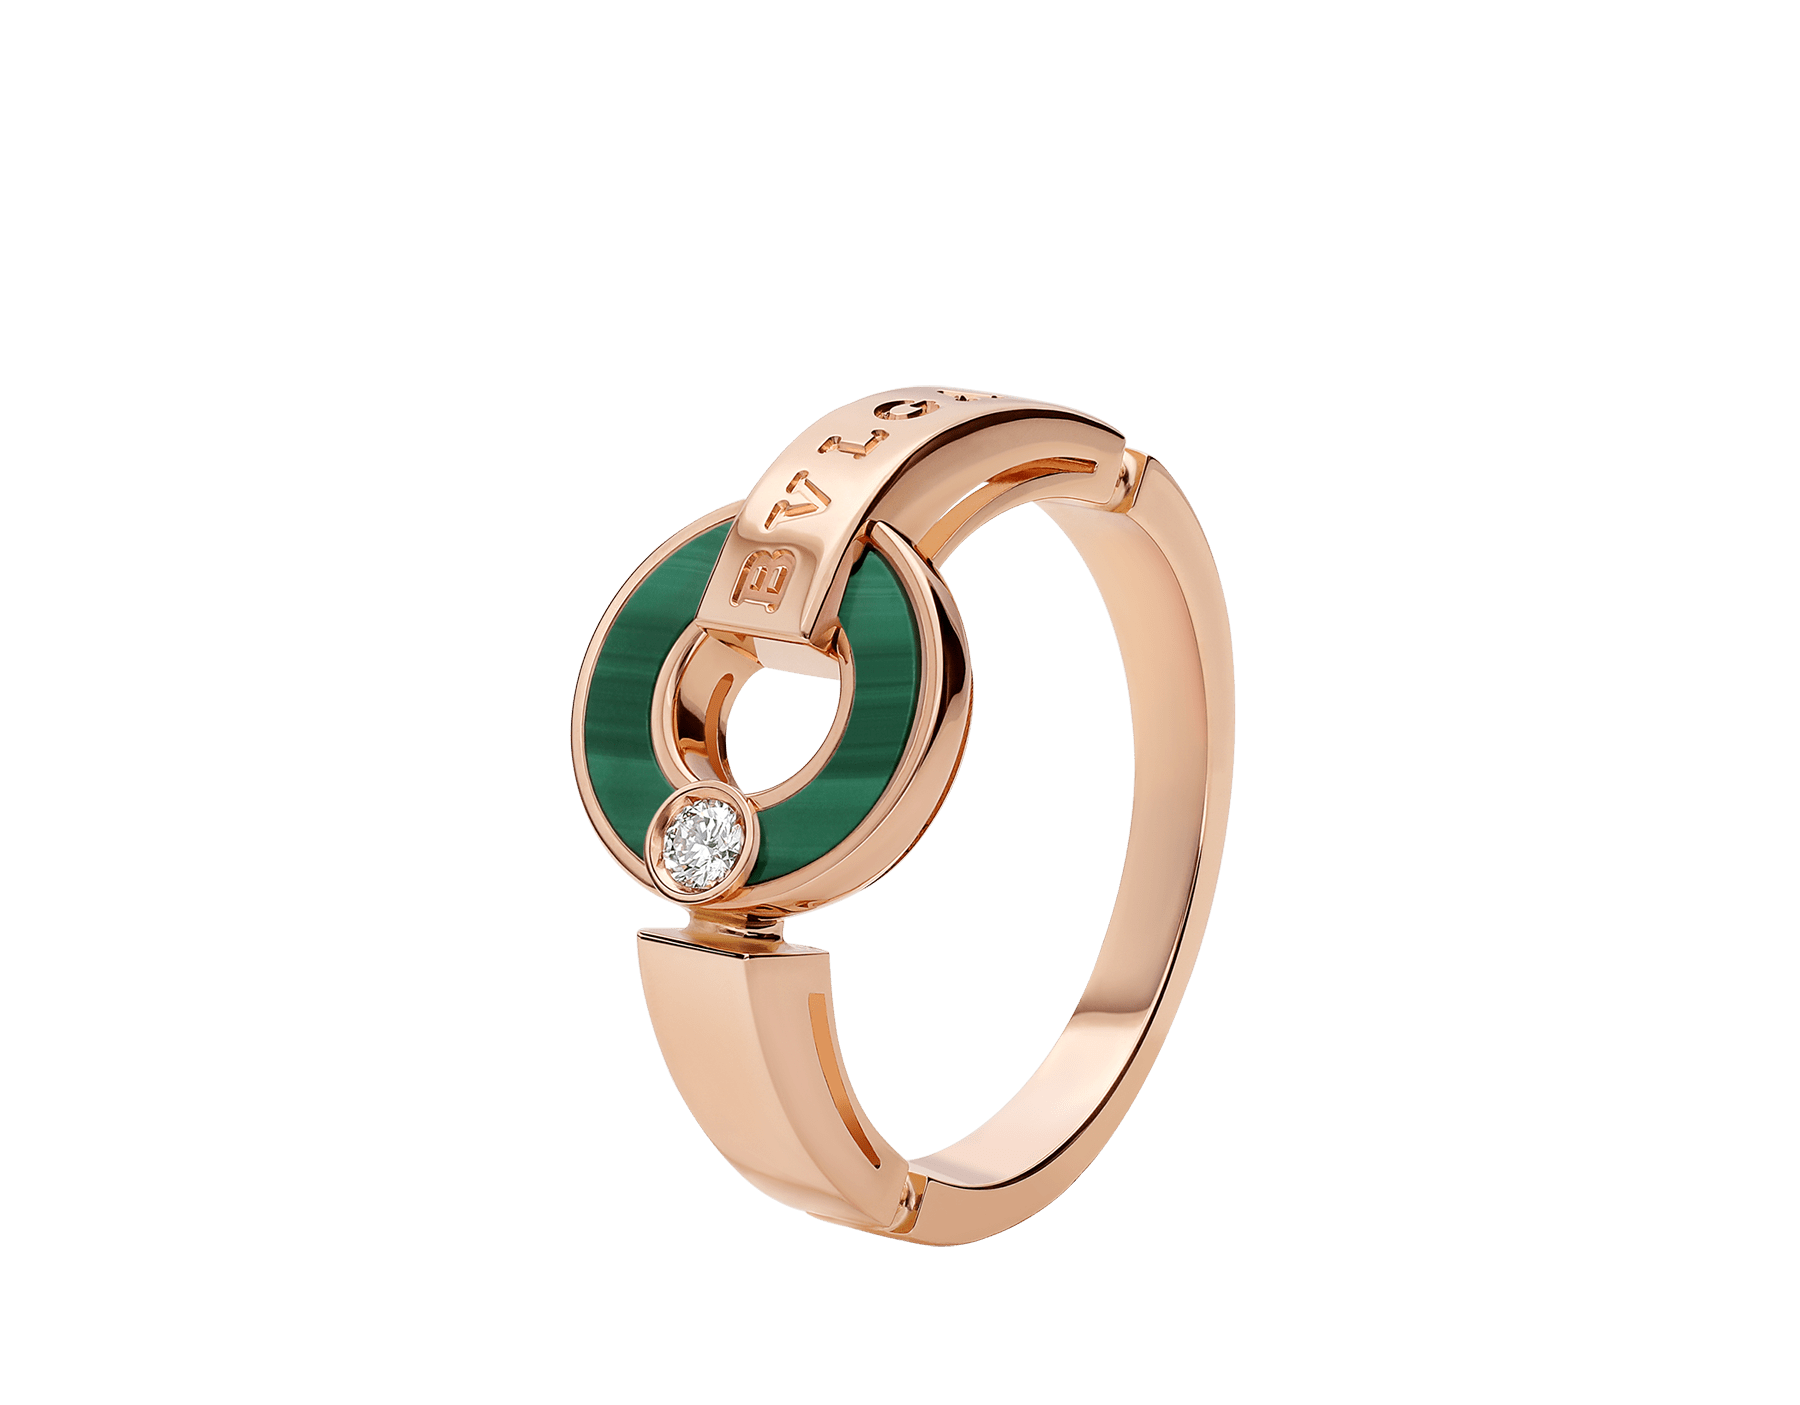 BVLGARI BVLGARI Openwork 18 kt rose gold ring set with malachite elements and a round brilliant-cut diamond AN858946 image 1